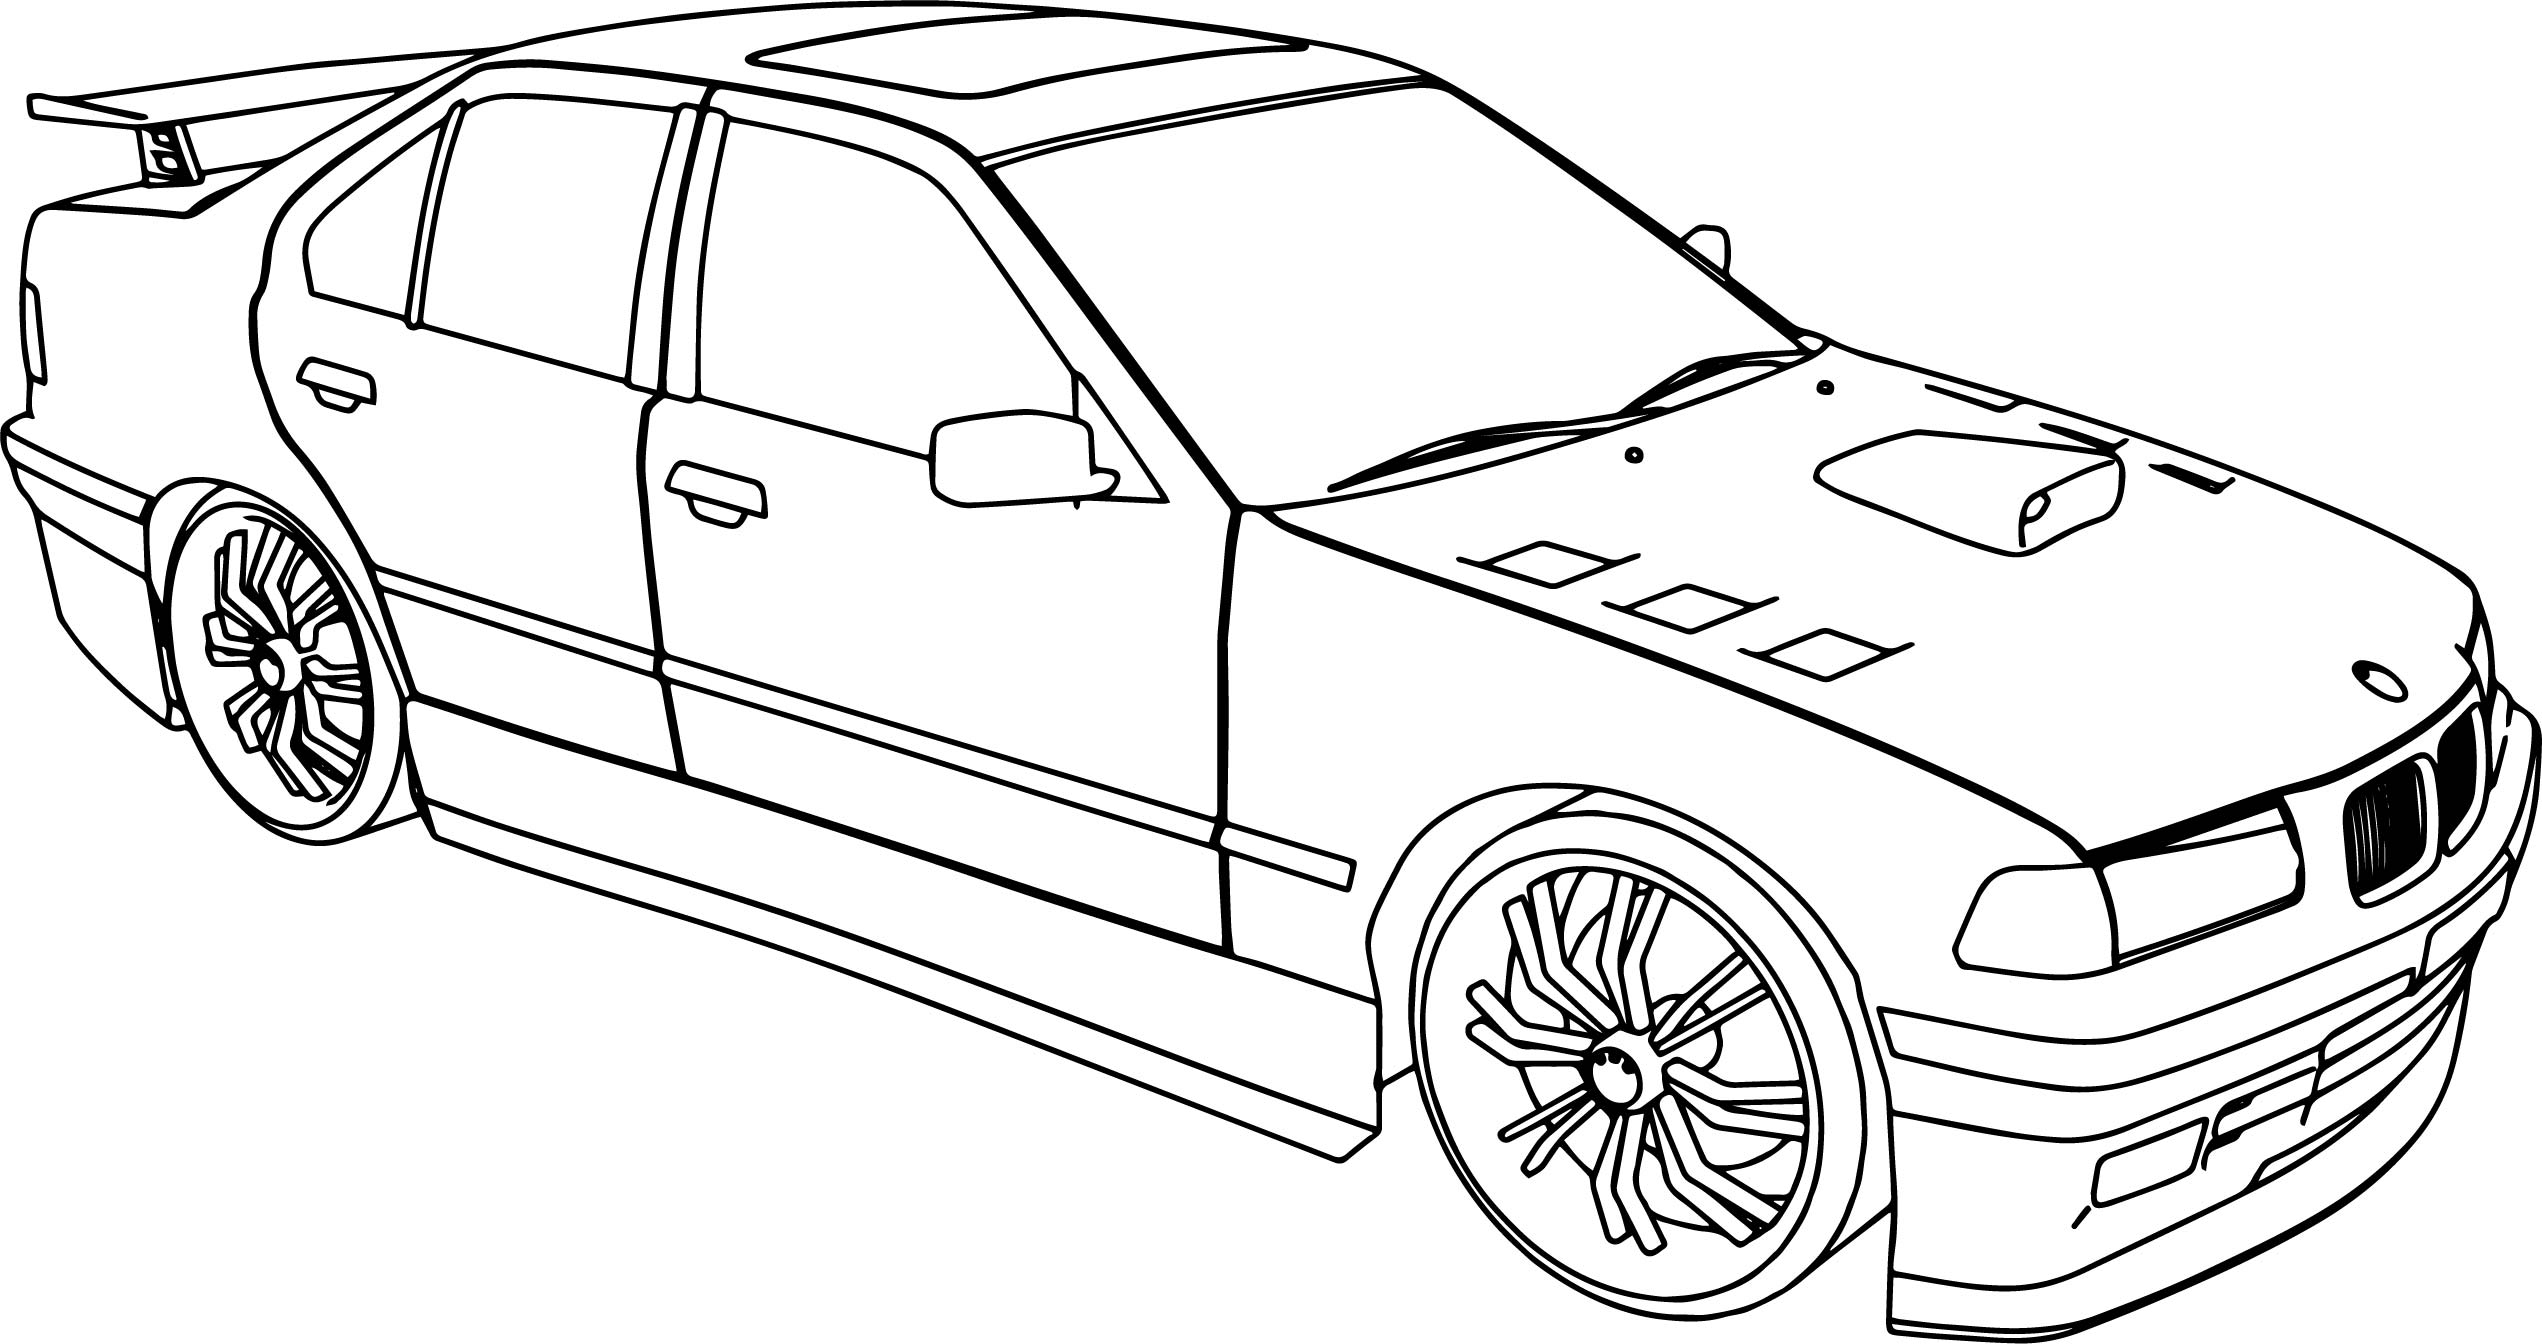 Tuner Car Coloring Pages : Bmw i tuning sport car coloring page wecoloringpage